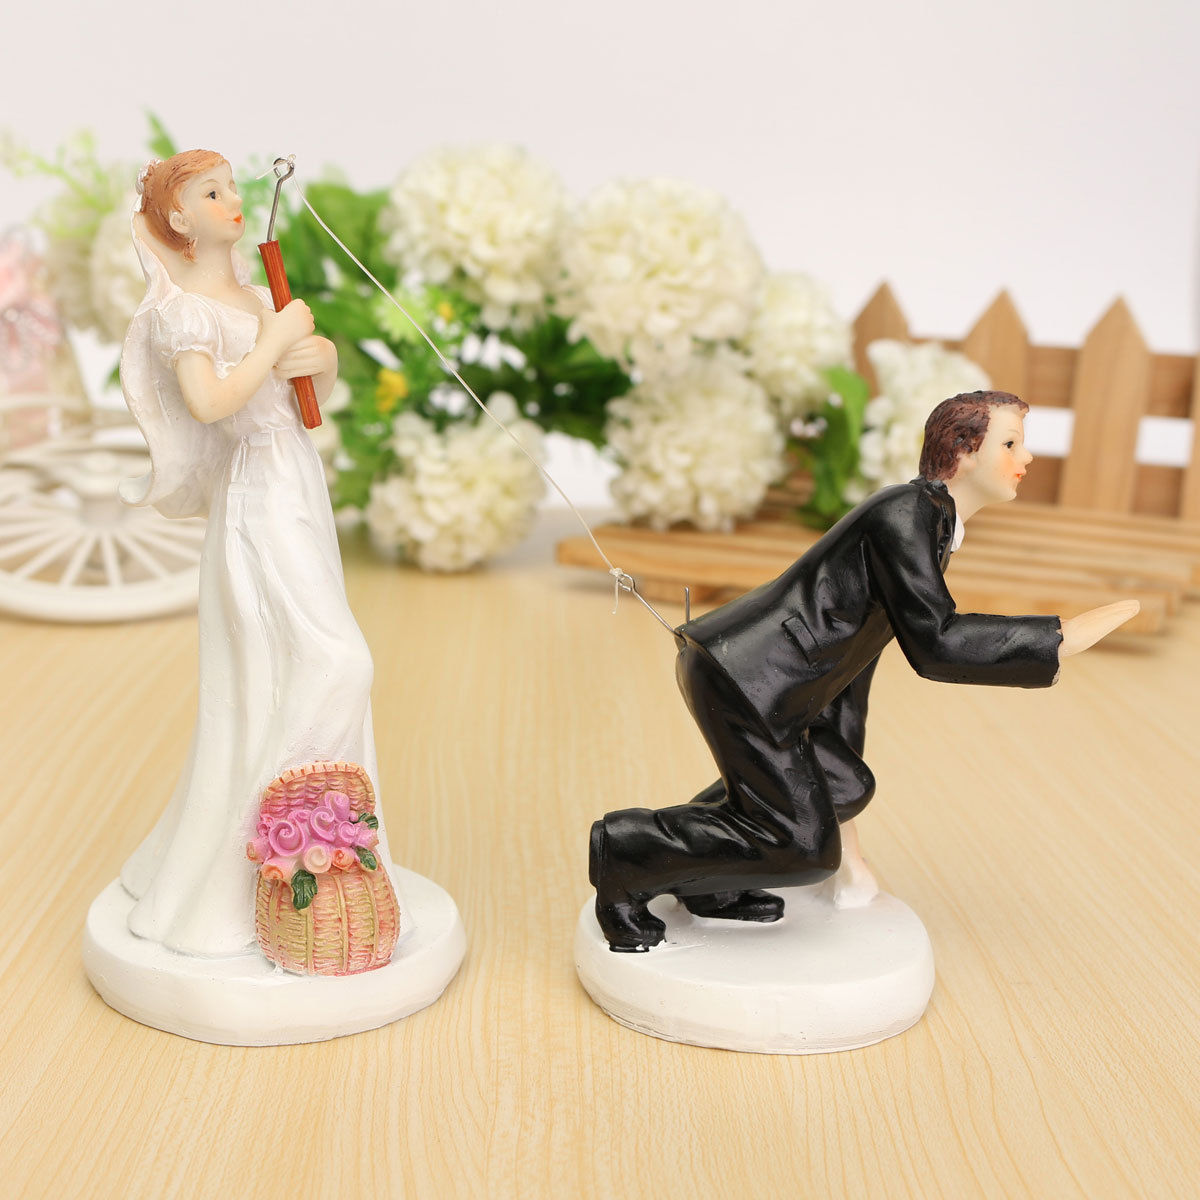 FUNNY ROMANTIC WEDDING CAKE TOPPER FIGURE BRIDE GROOM